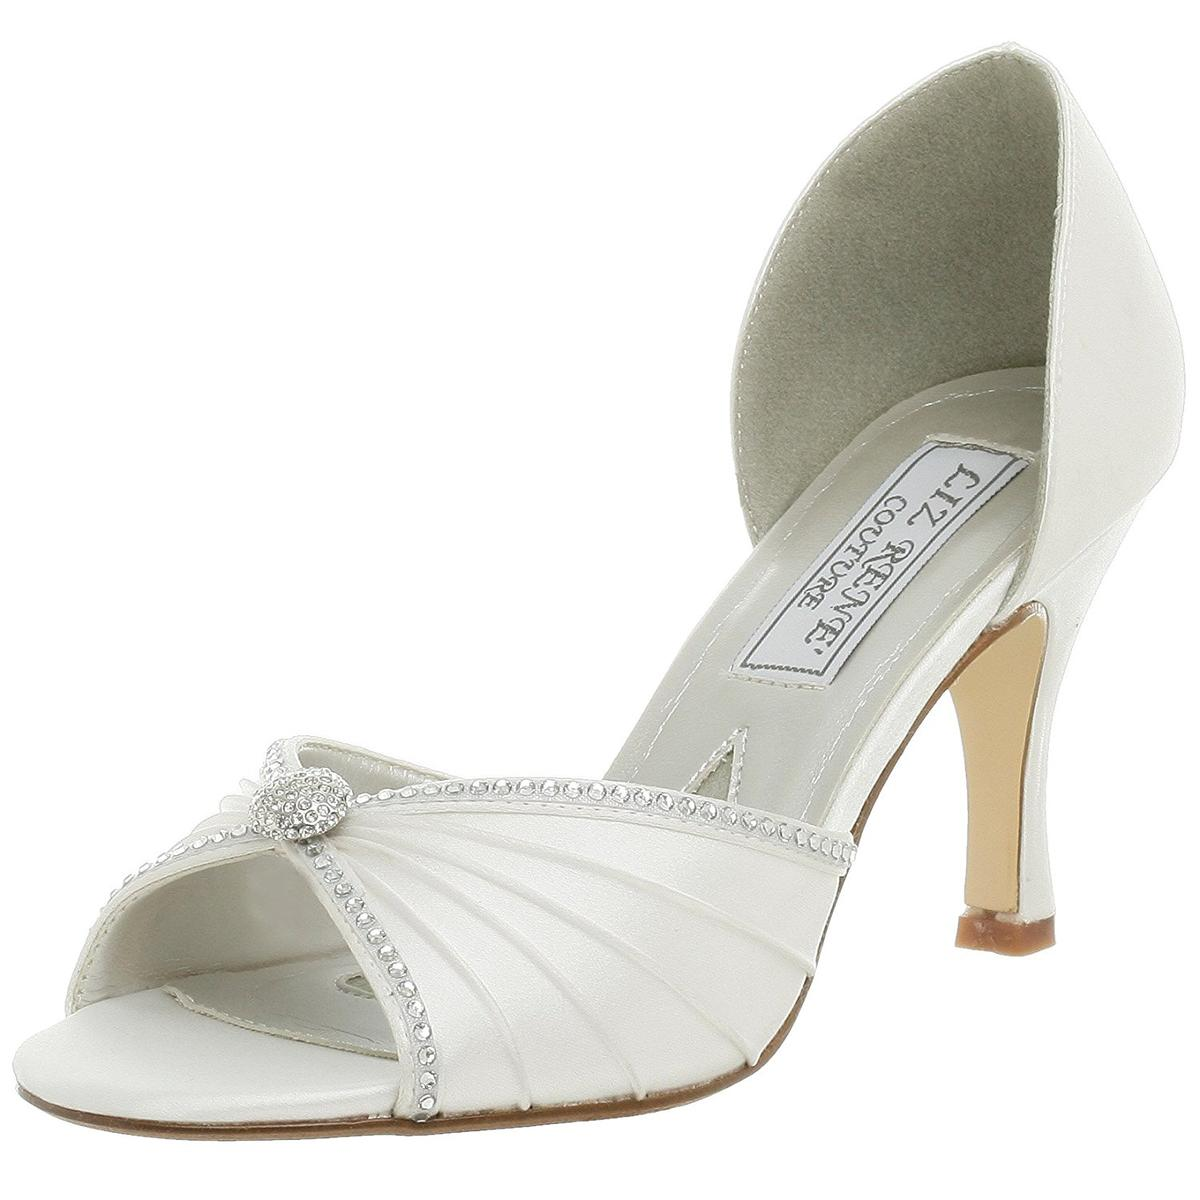 Liz Rene Couture Addison Womens White Heels by Liz Rene Couture